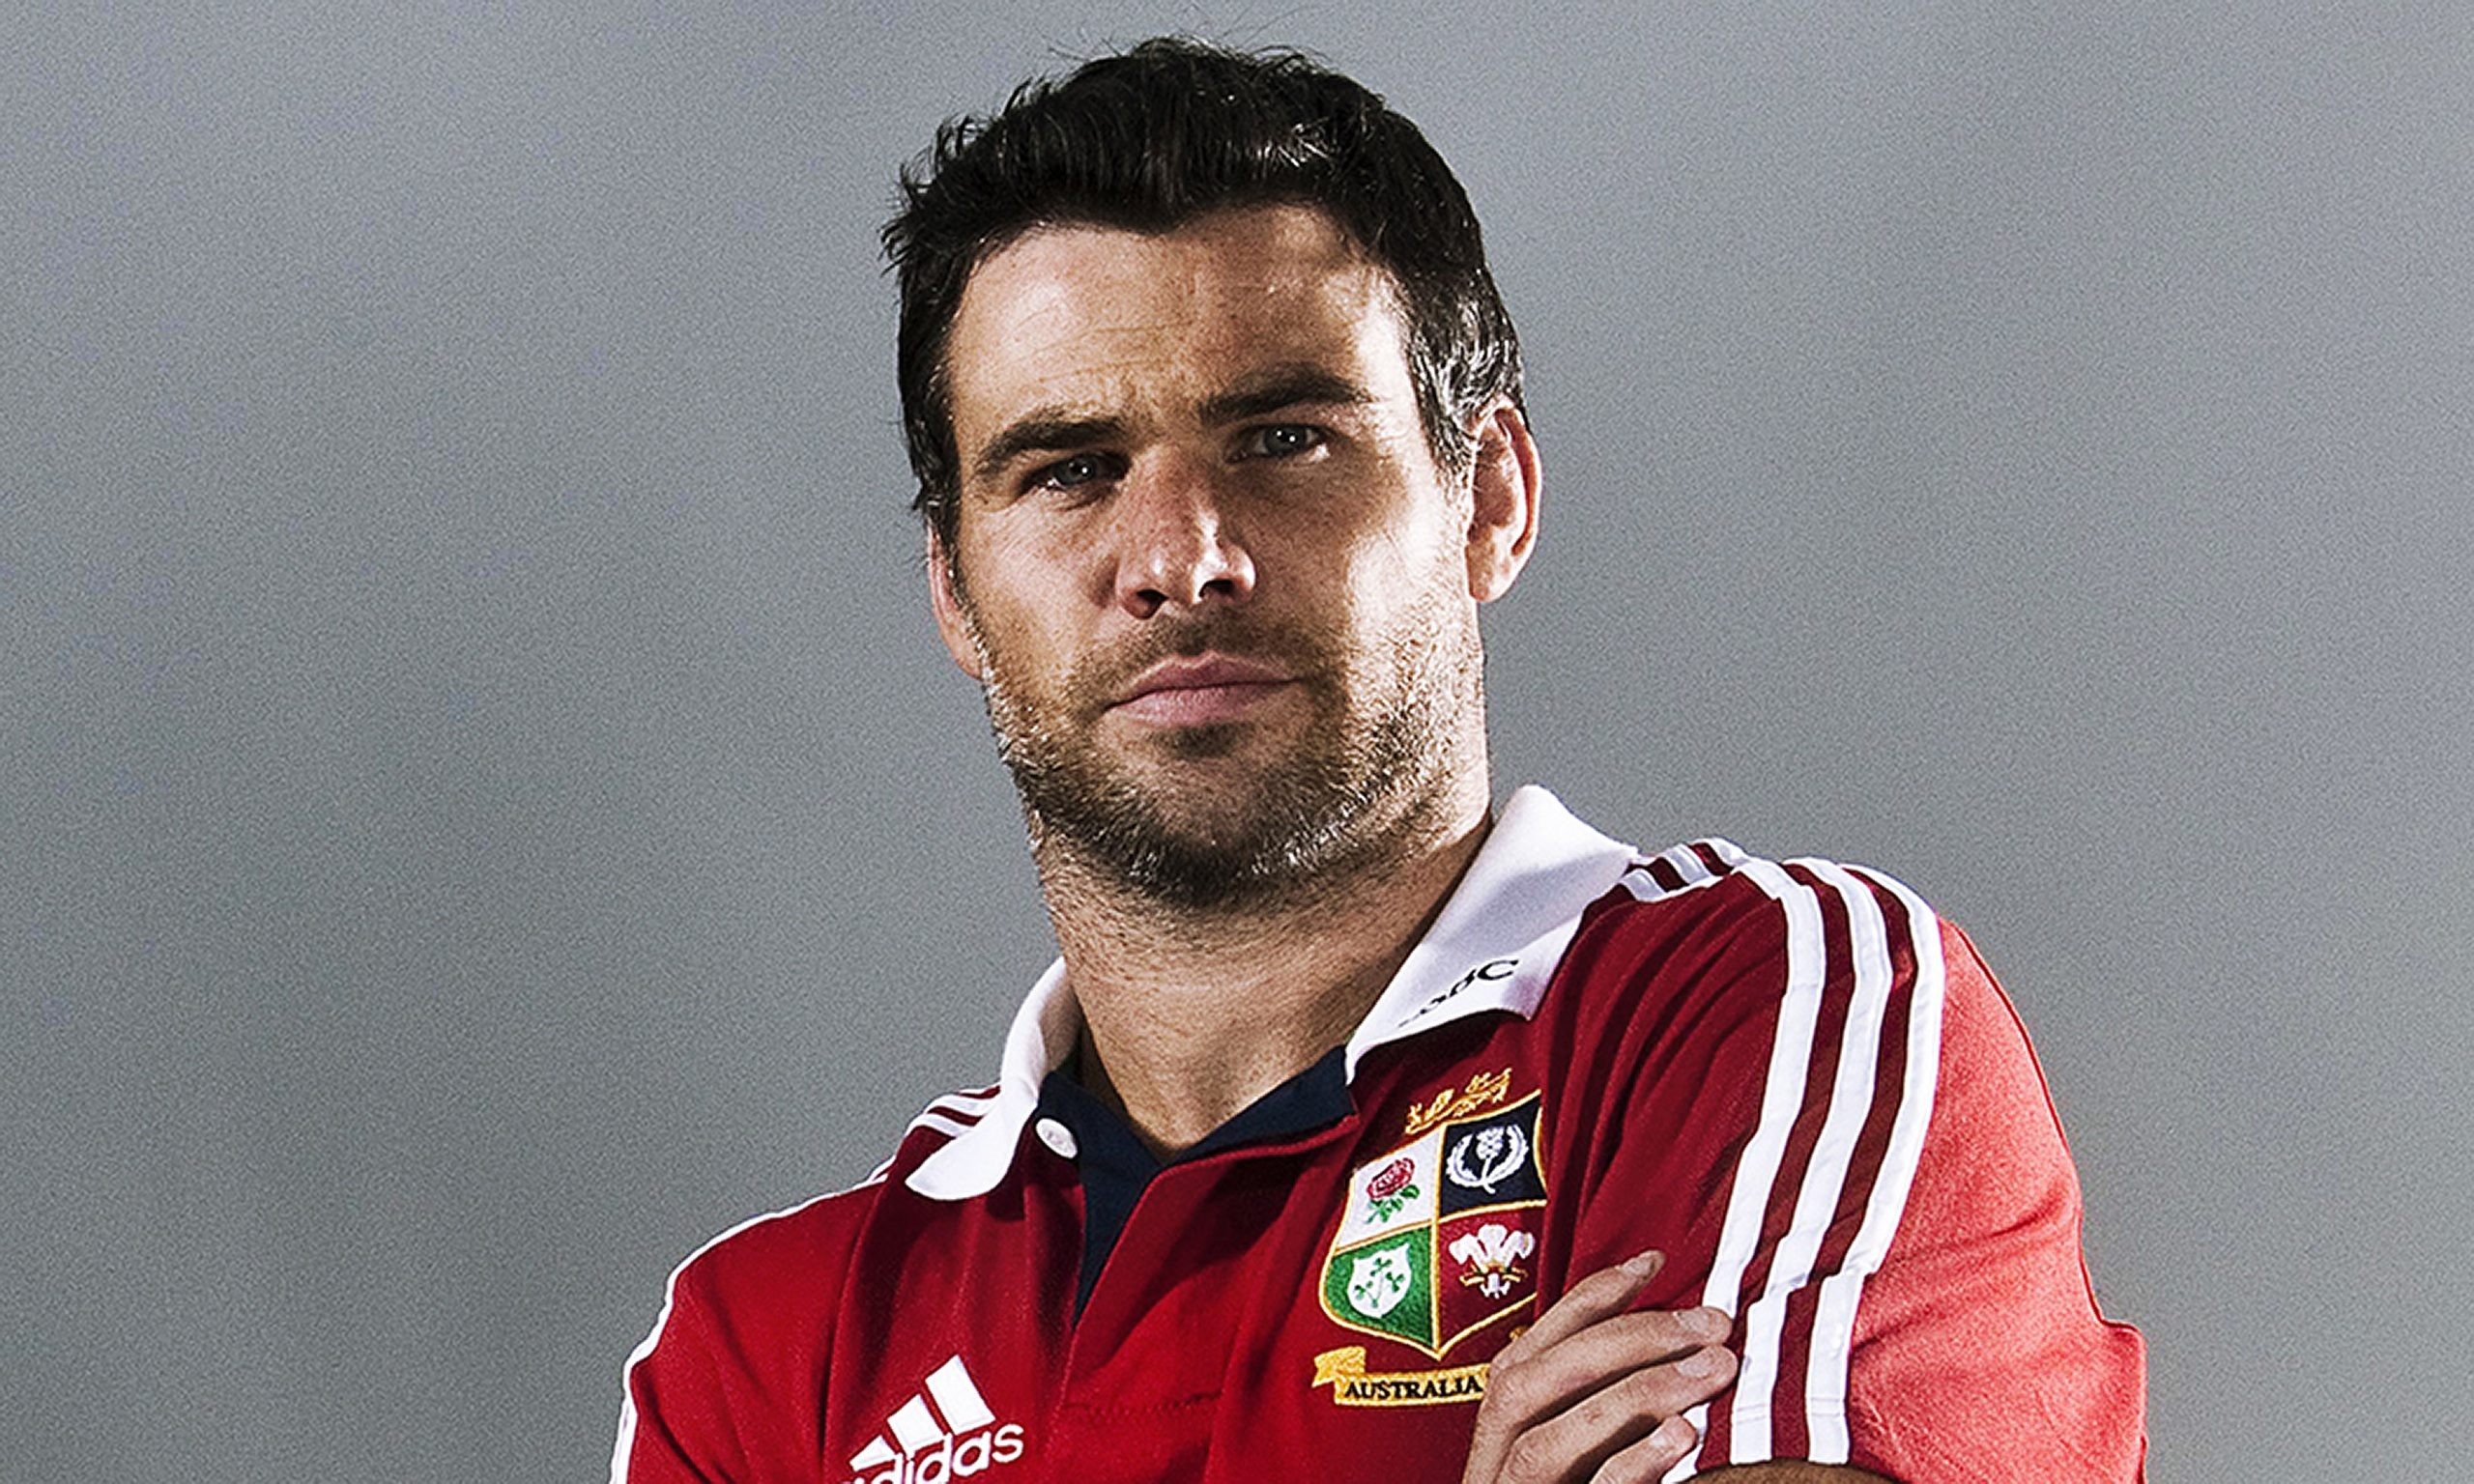 Mike Phillips Net Worth